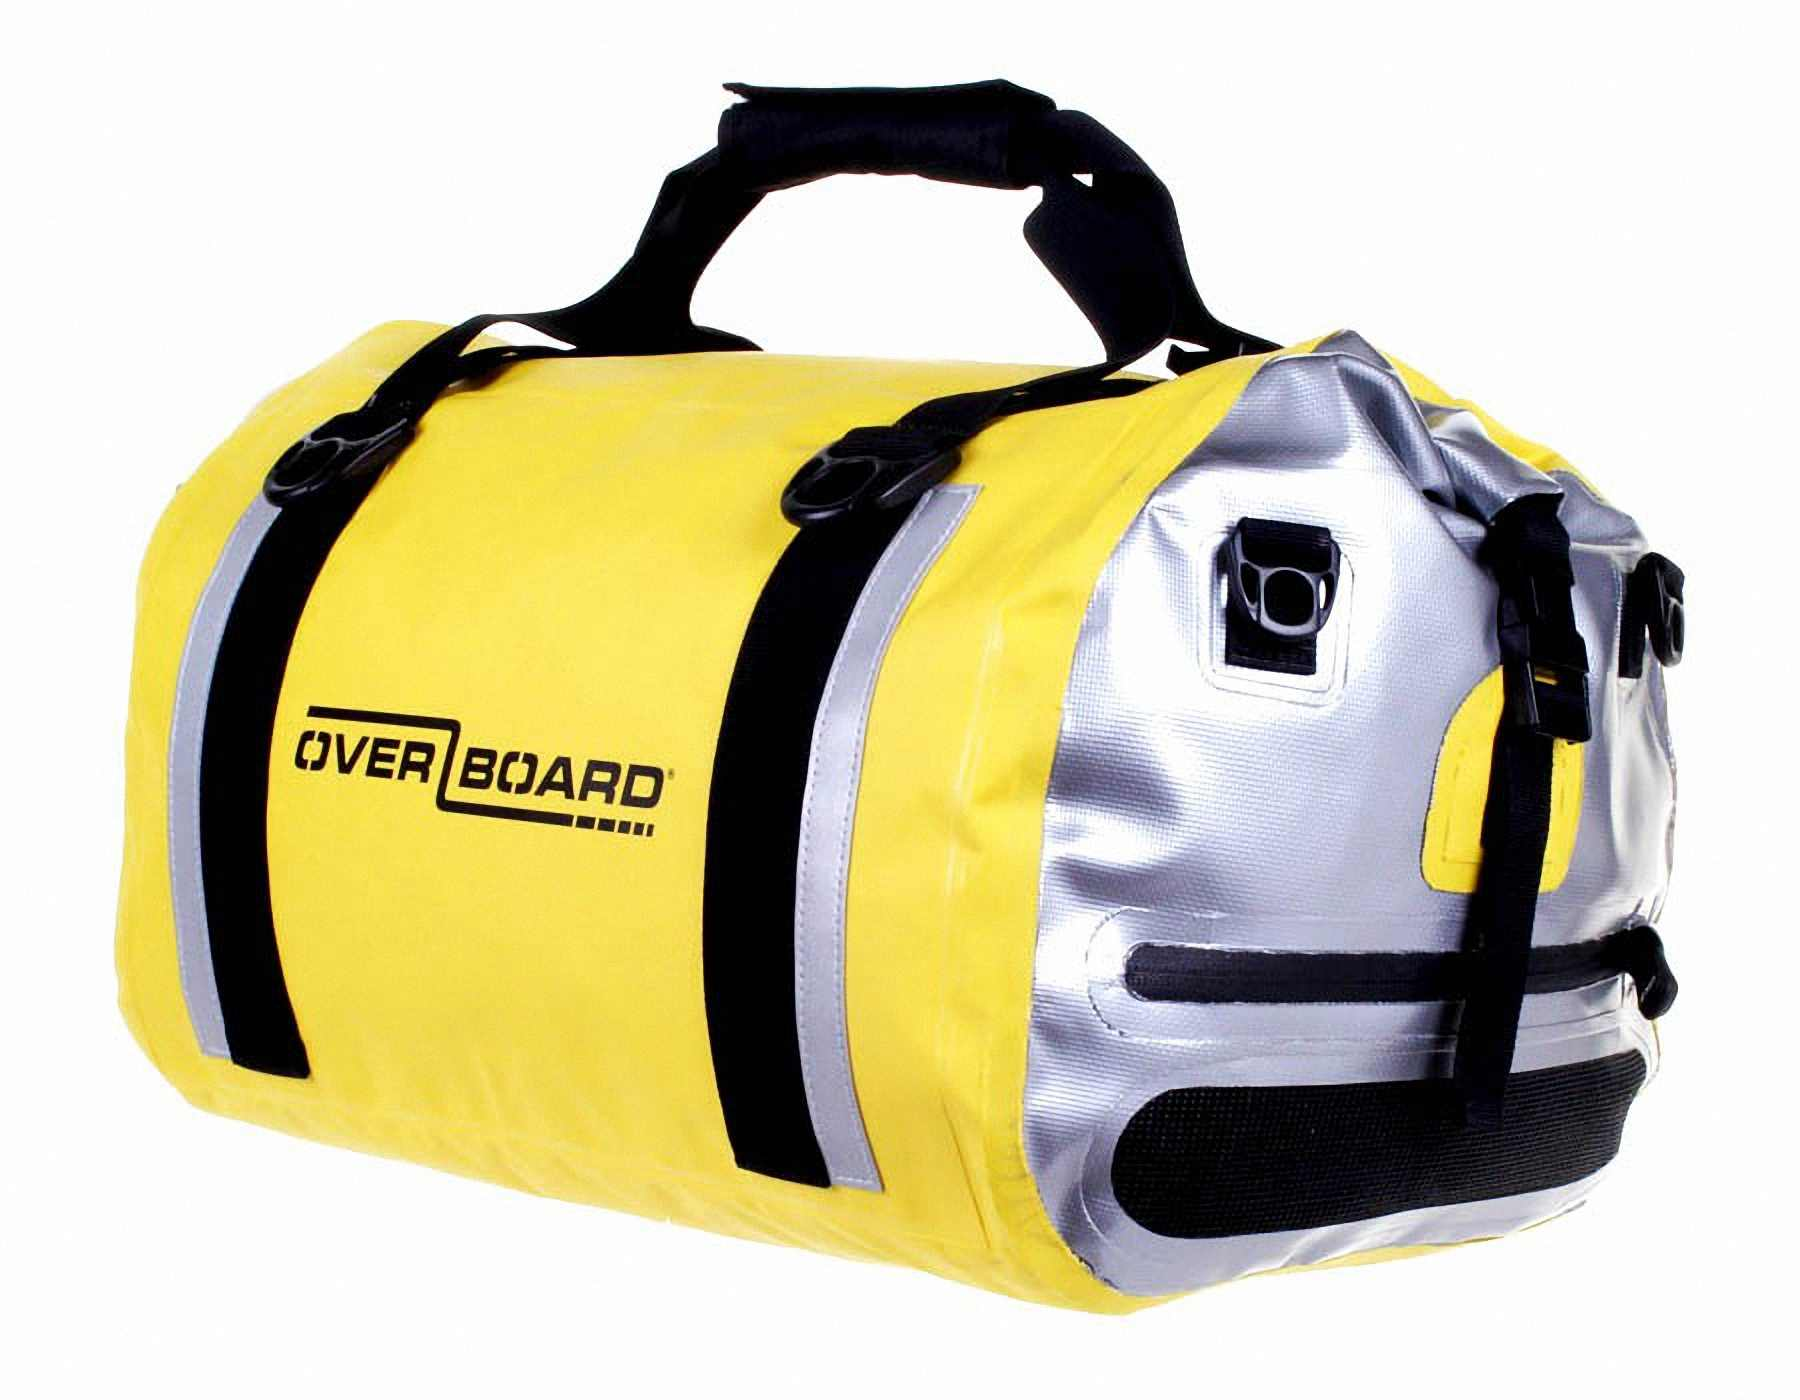 Водонепроницаемая сумка OverBoard OB1153Y - Pro-Sports Waterproof Duffel Bag - 40 литров.  Фото 4